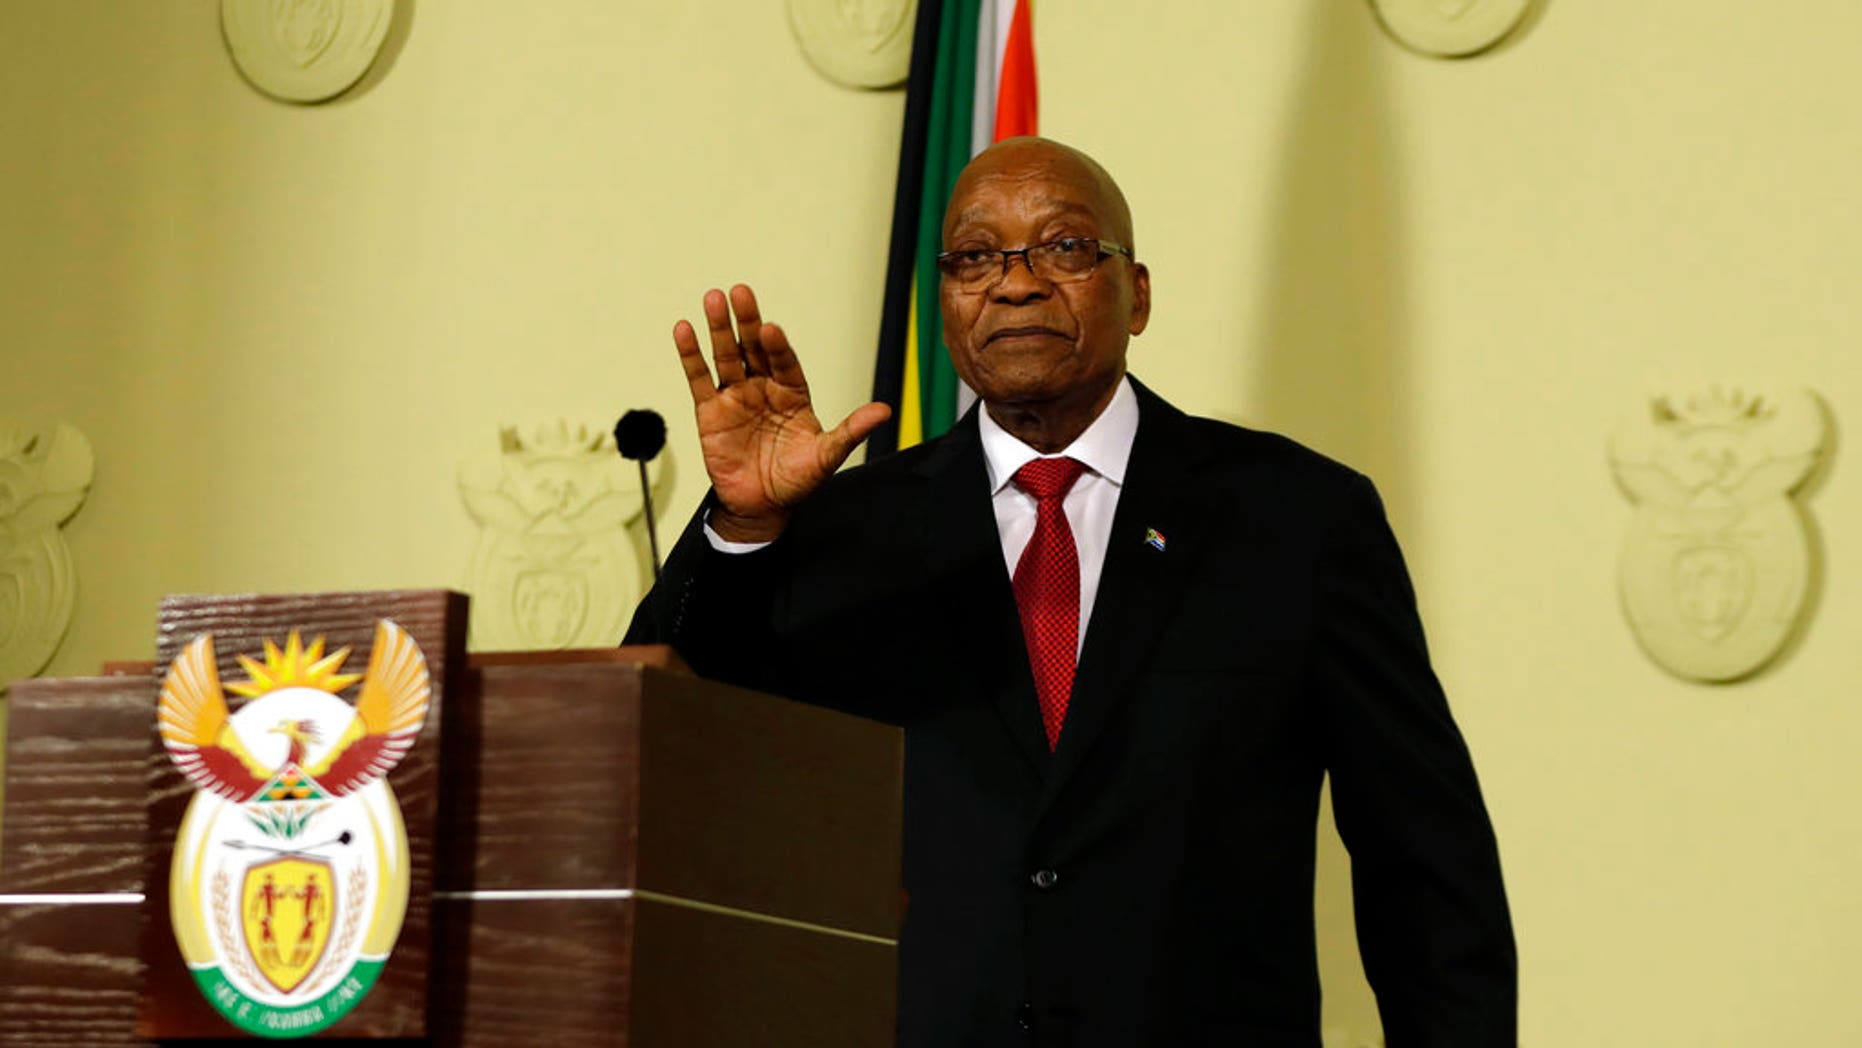 Jacob Zuma, in an address to the nation, resigned as president of South Africa.